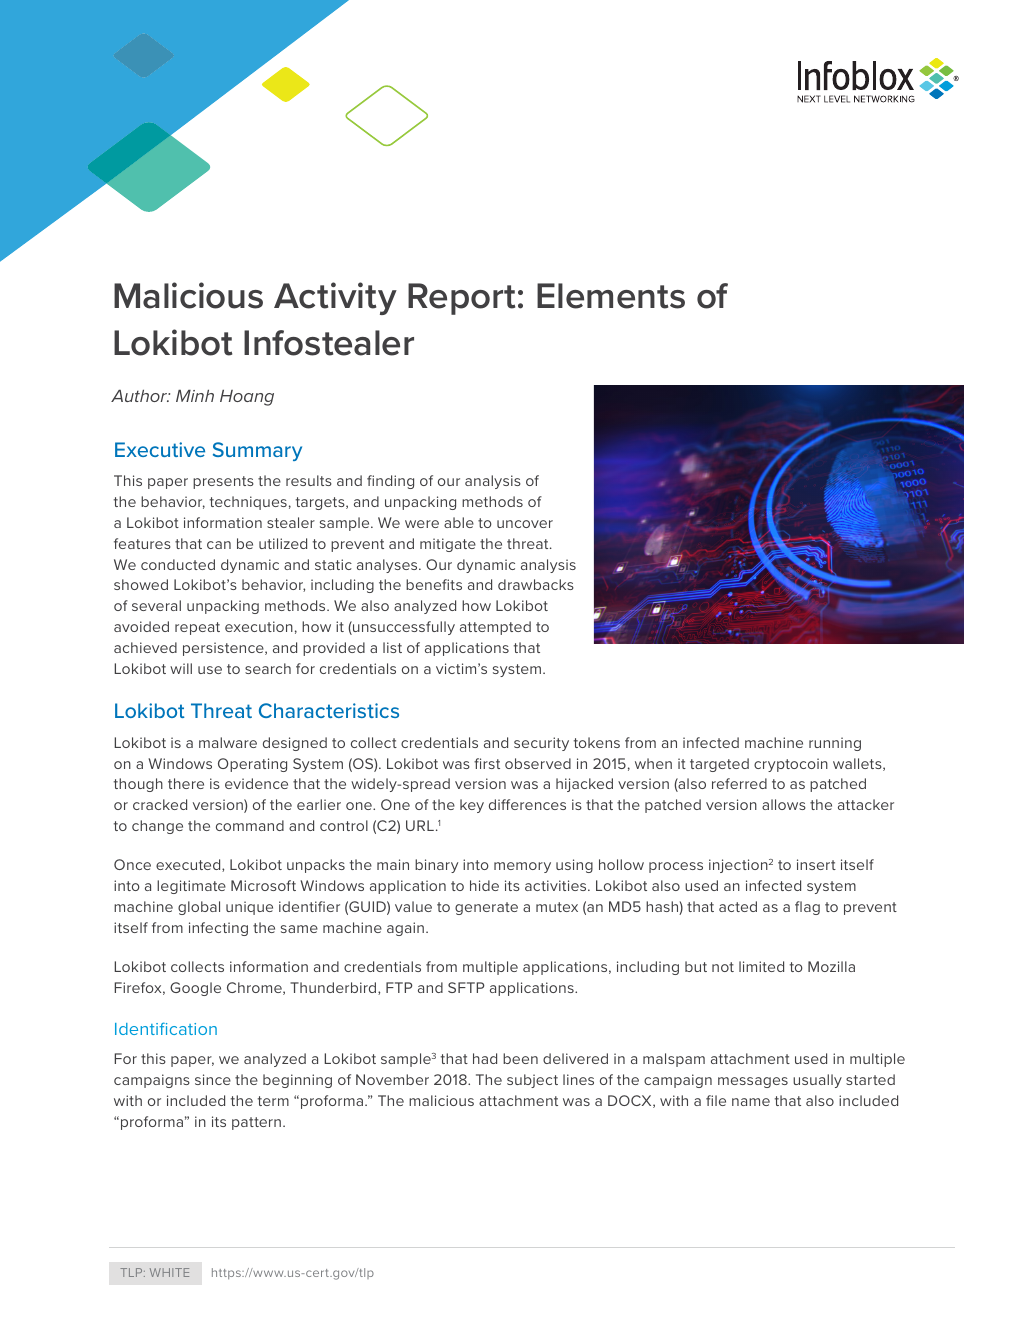 Malicious Activity Report: Elements of Lokibot Infostealer